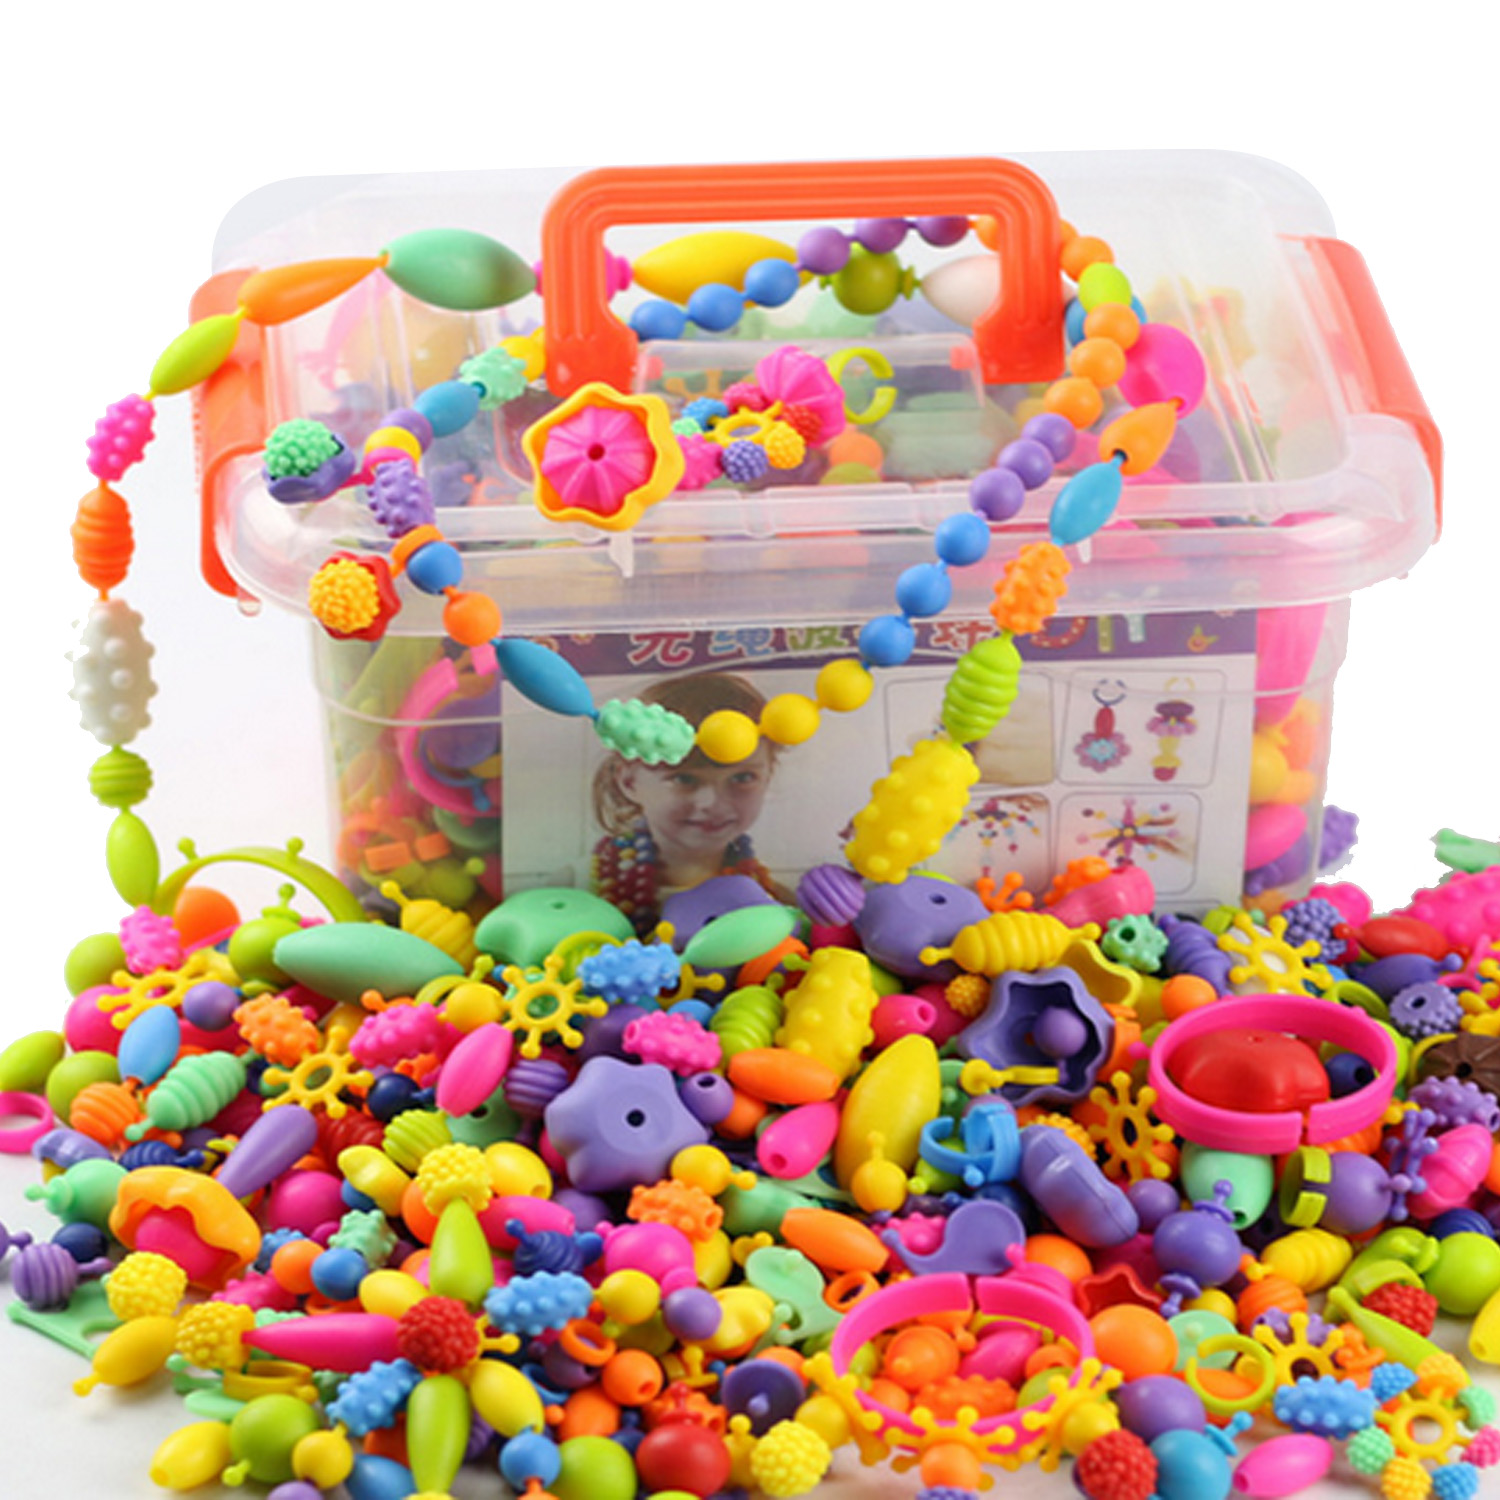 Besegad 485PCS String Beads Set Assorted Shapes Pop Snap Beads Creative DIY Beads Toy For Kid Girls Jewelry Making Birthday Gift